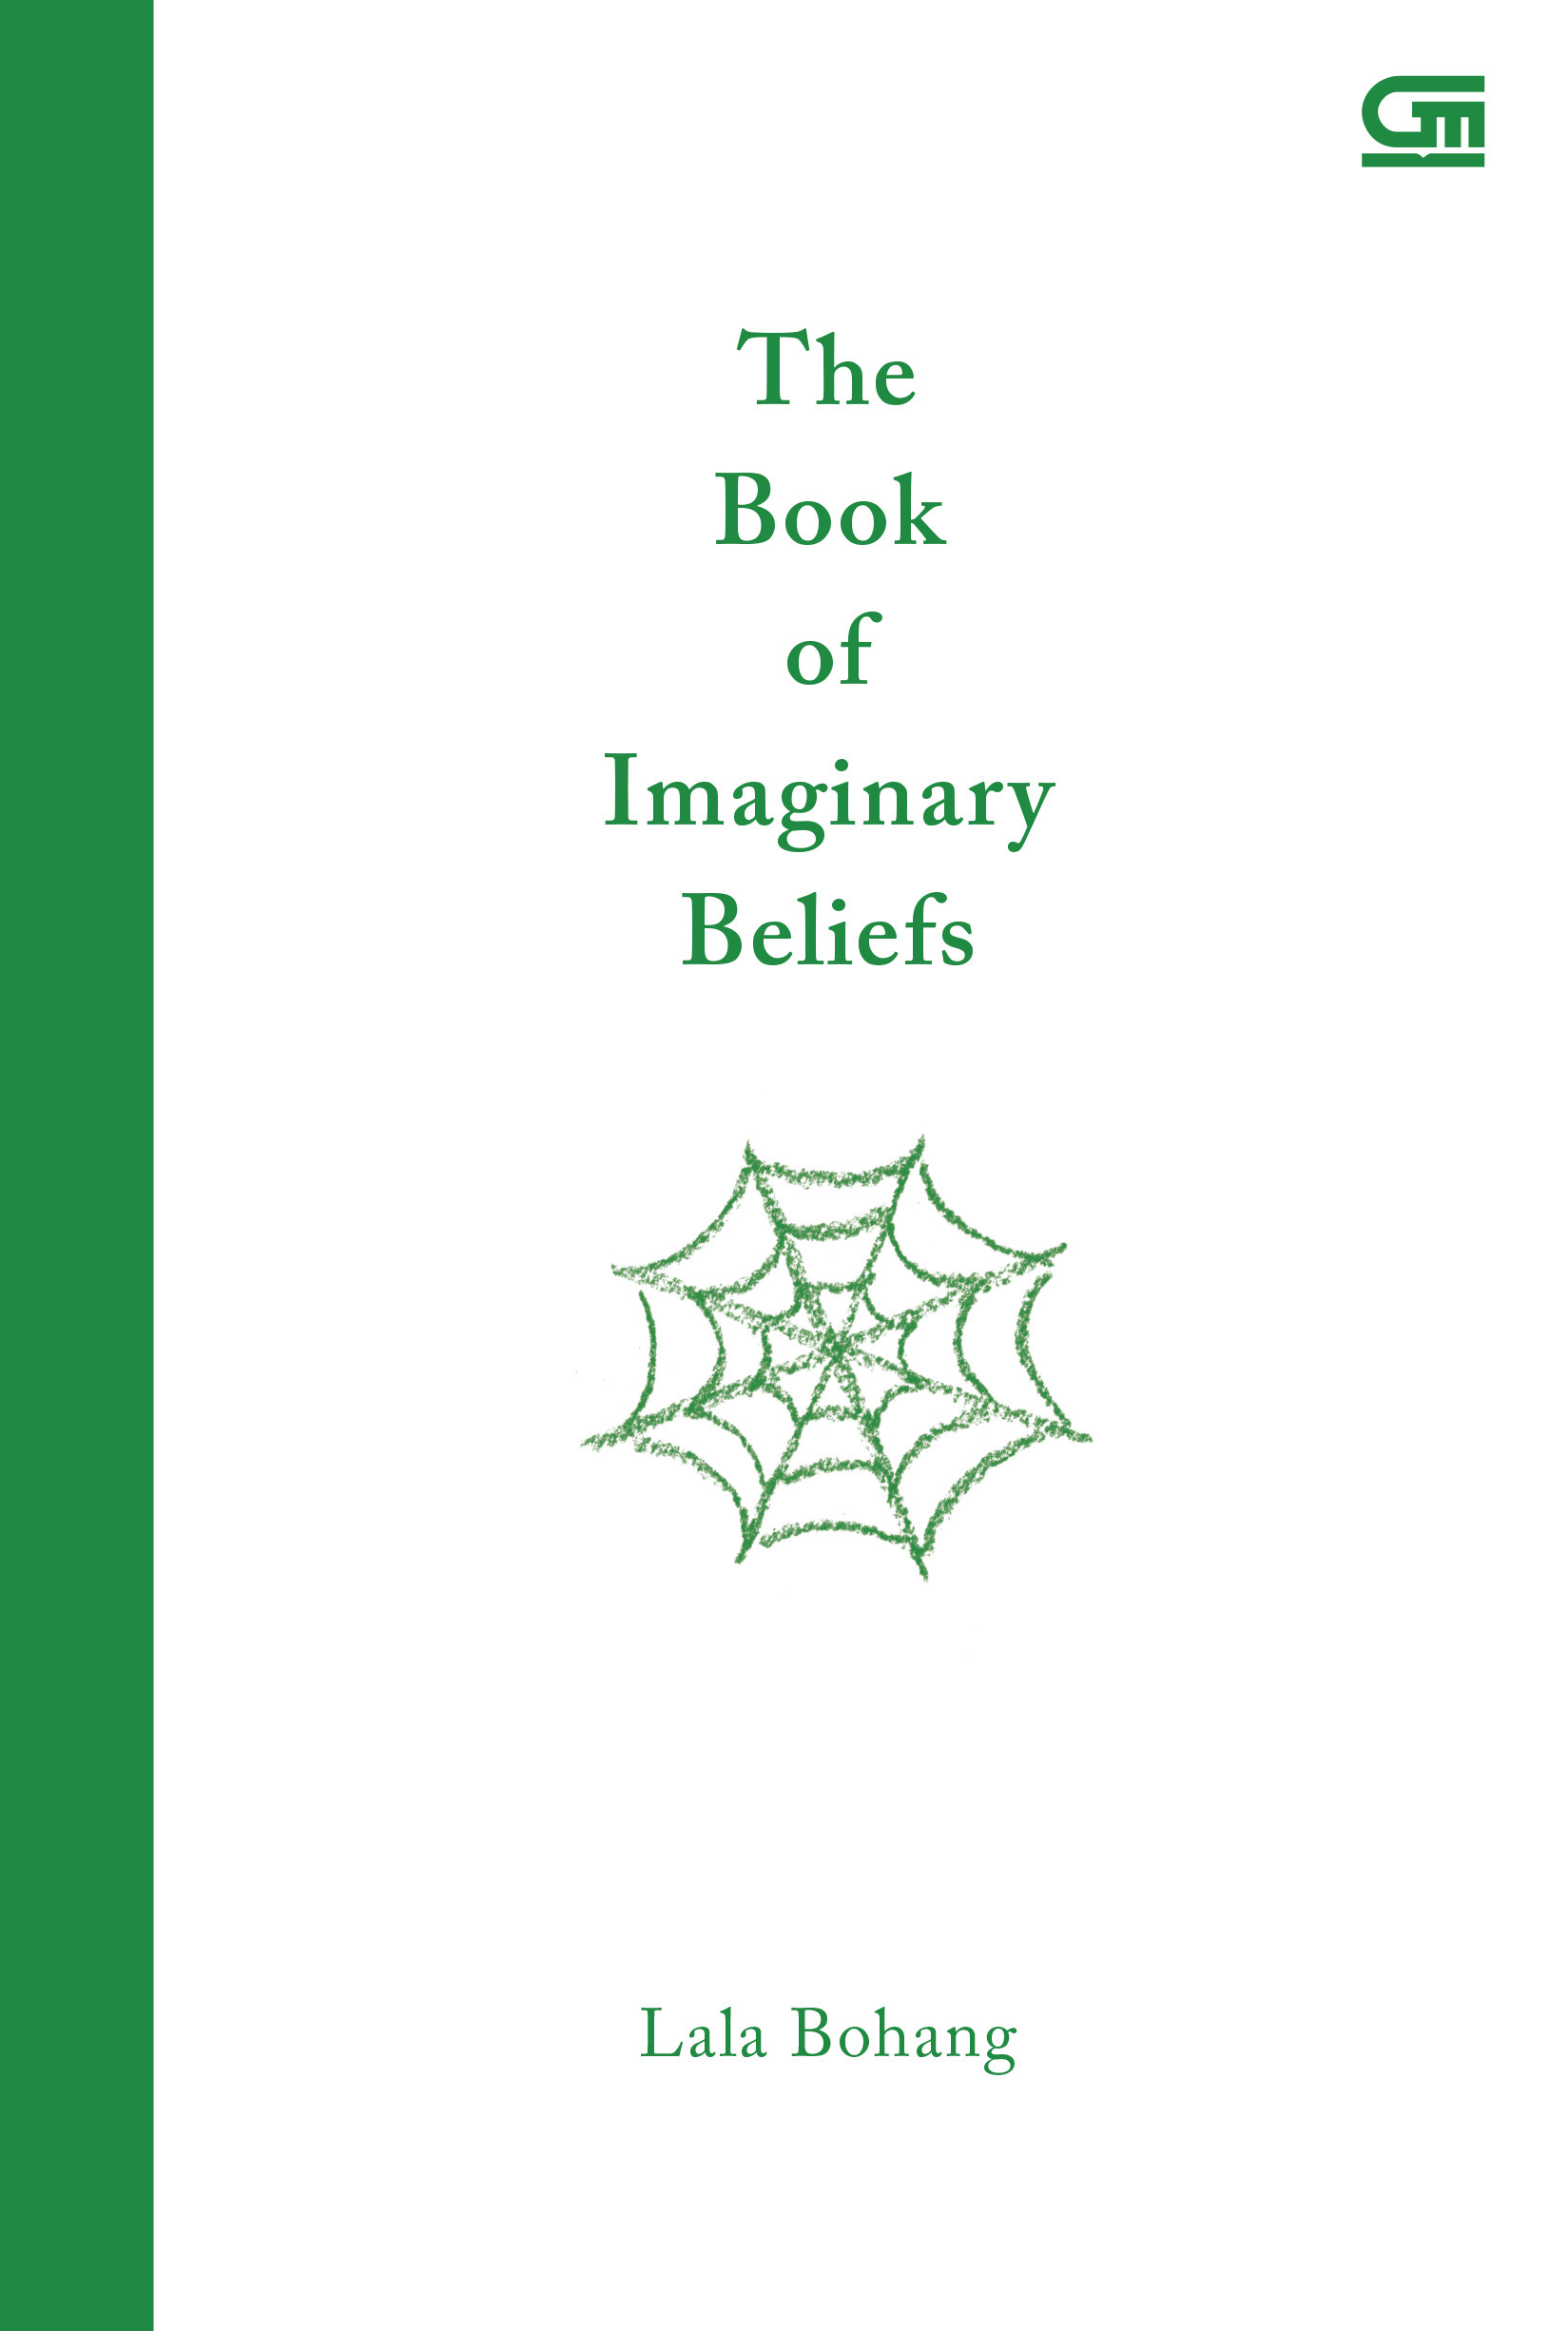 The Book of Imaginary Beliefs